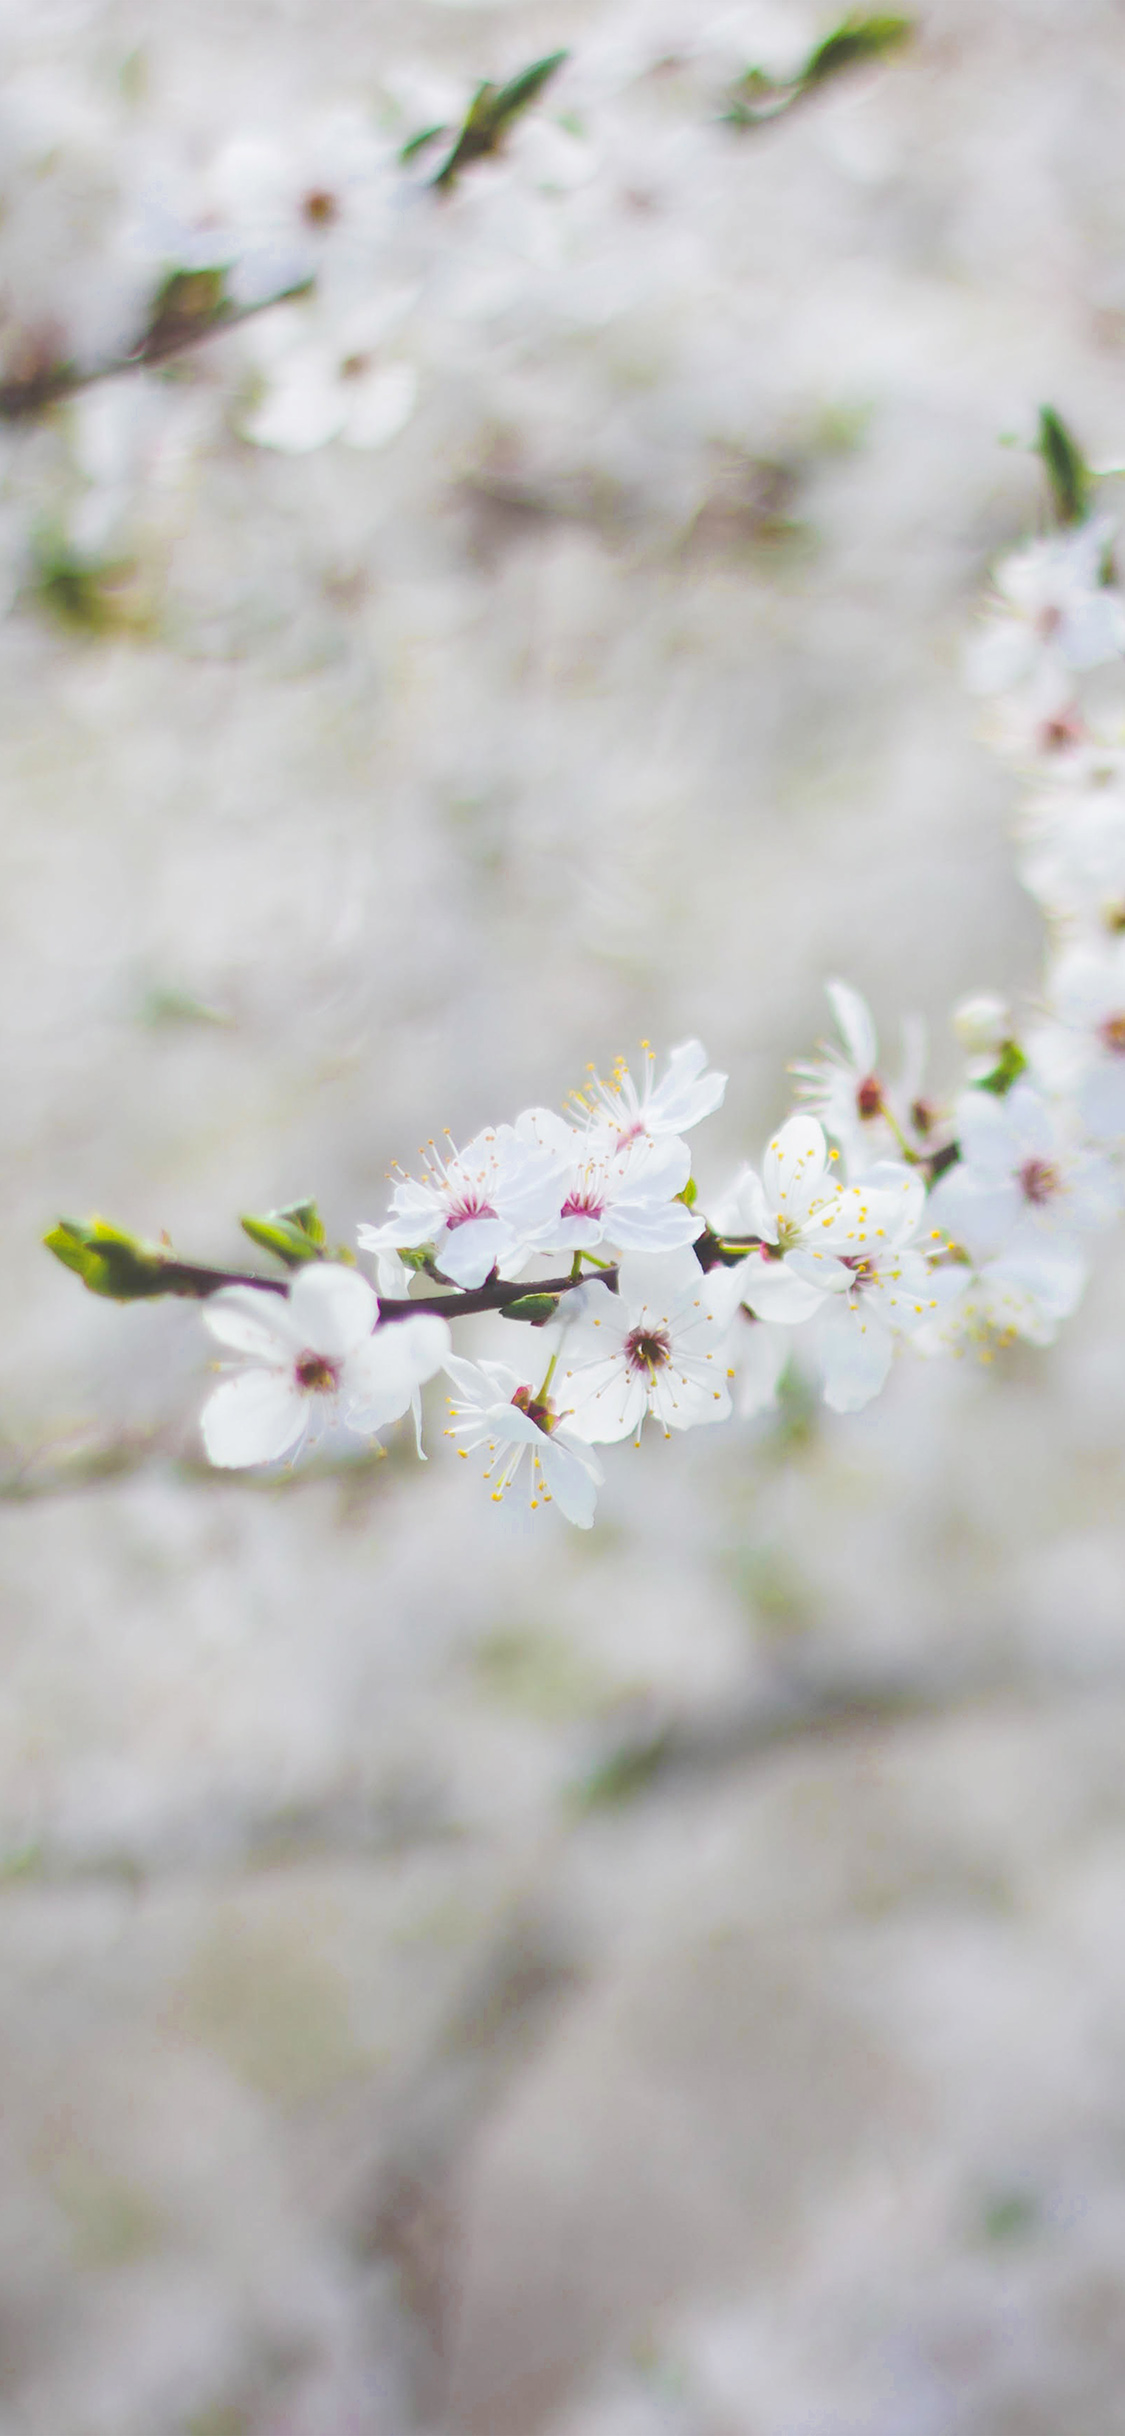 iPhoneXpapers.com-Apple-iPhone-wallpaper-nb64-spring-flower-cherry-blossom-bokeh